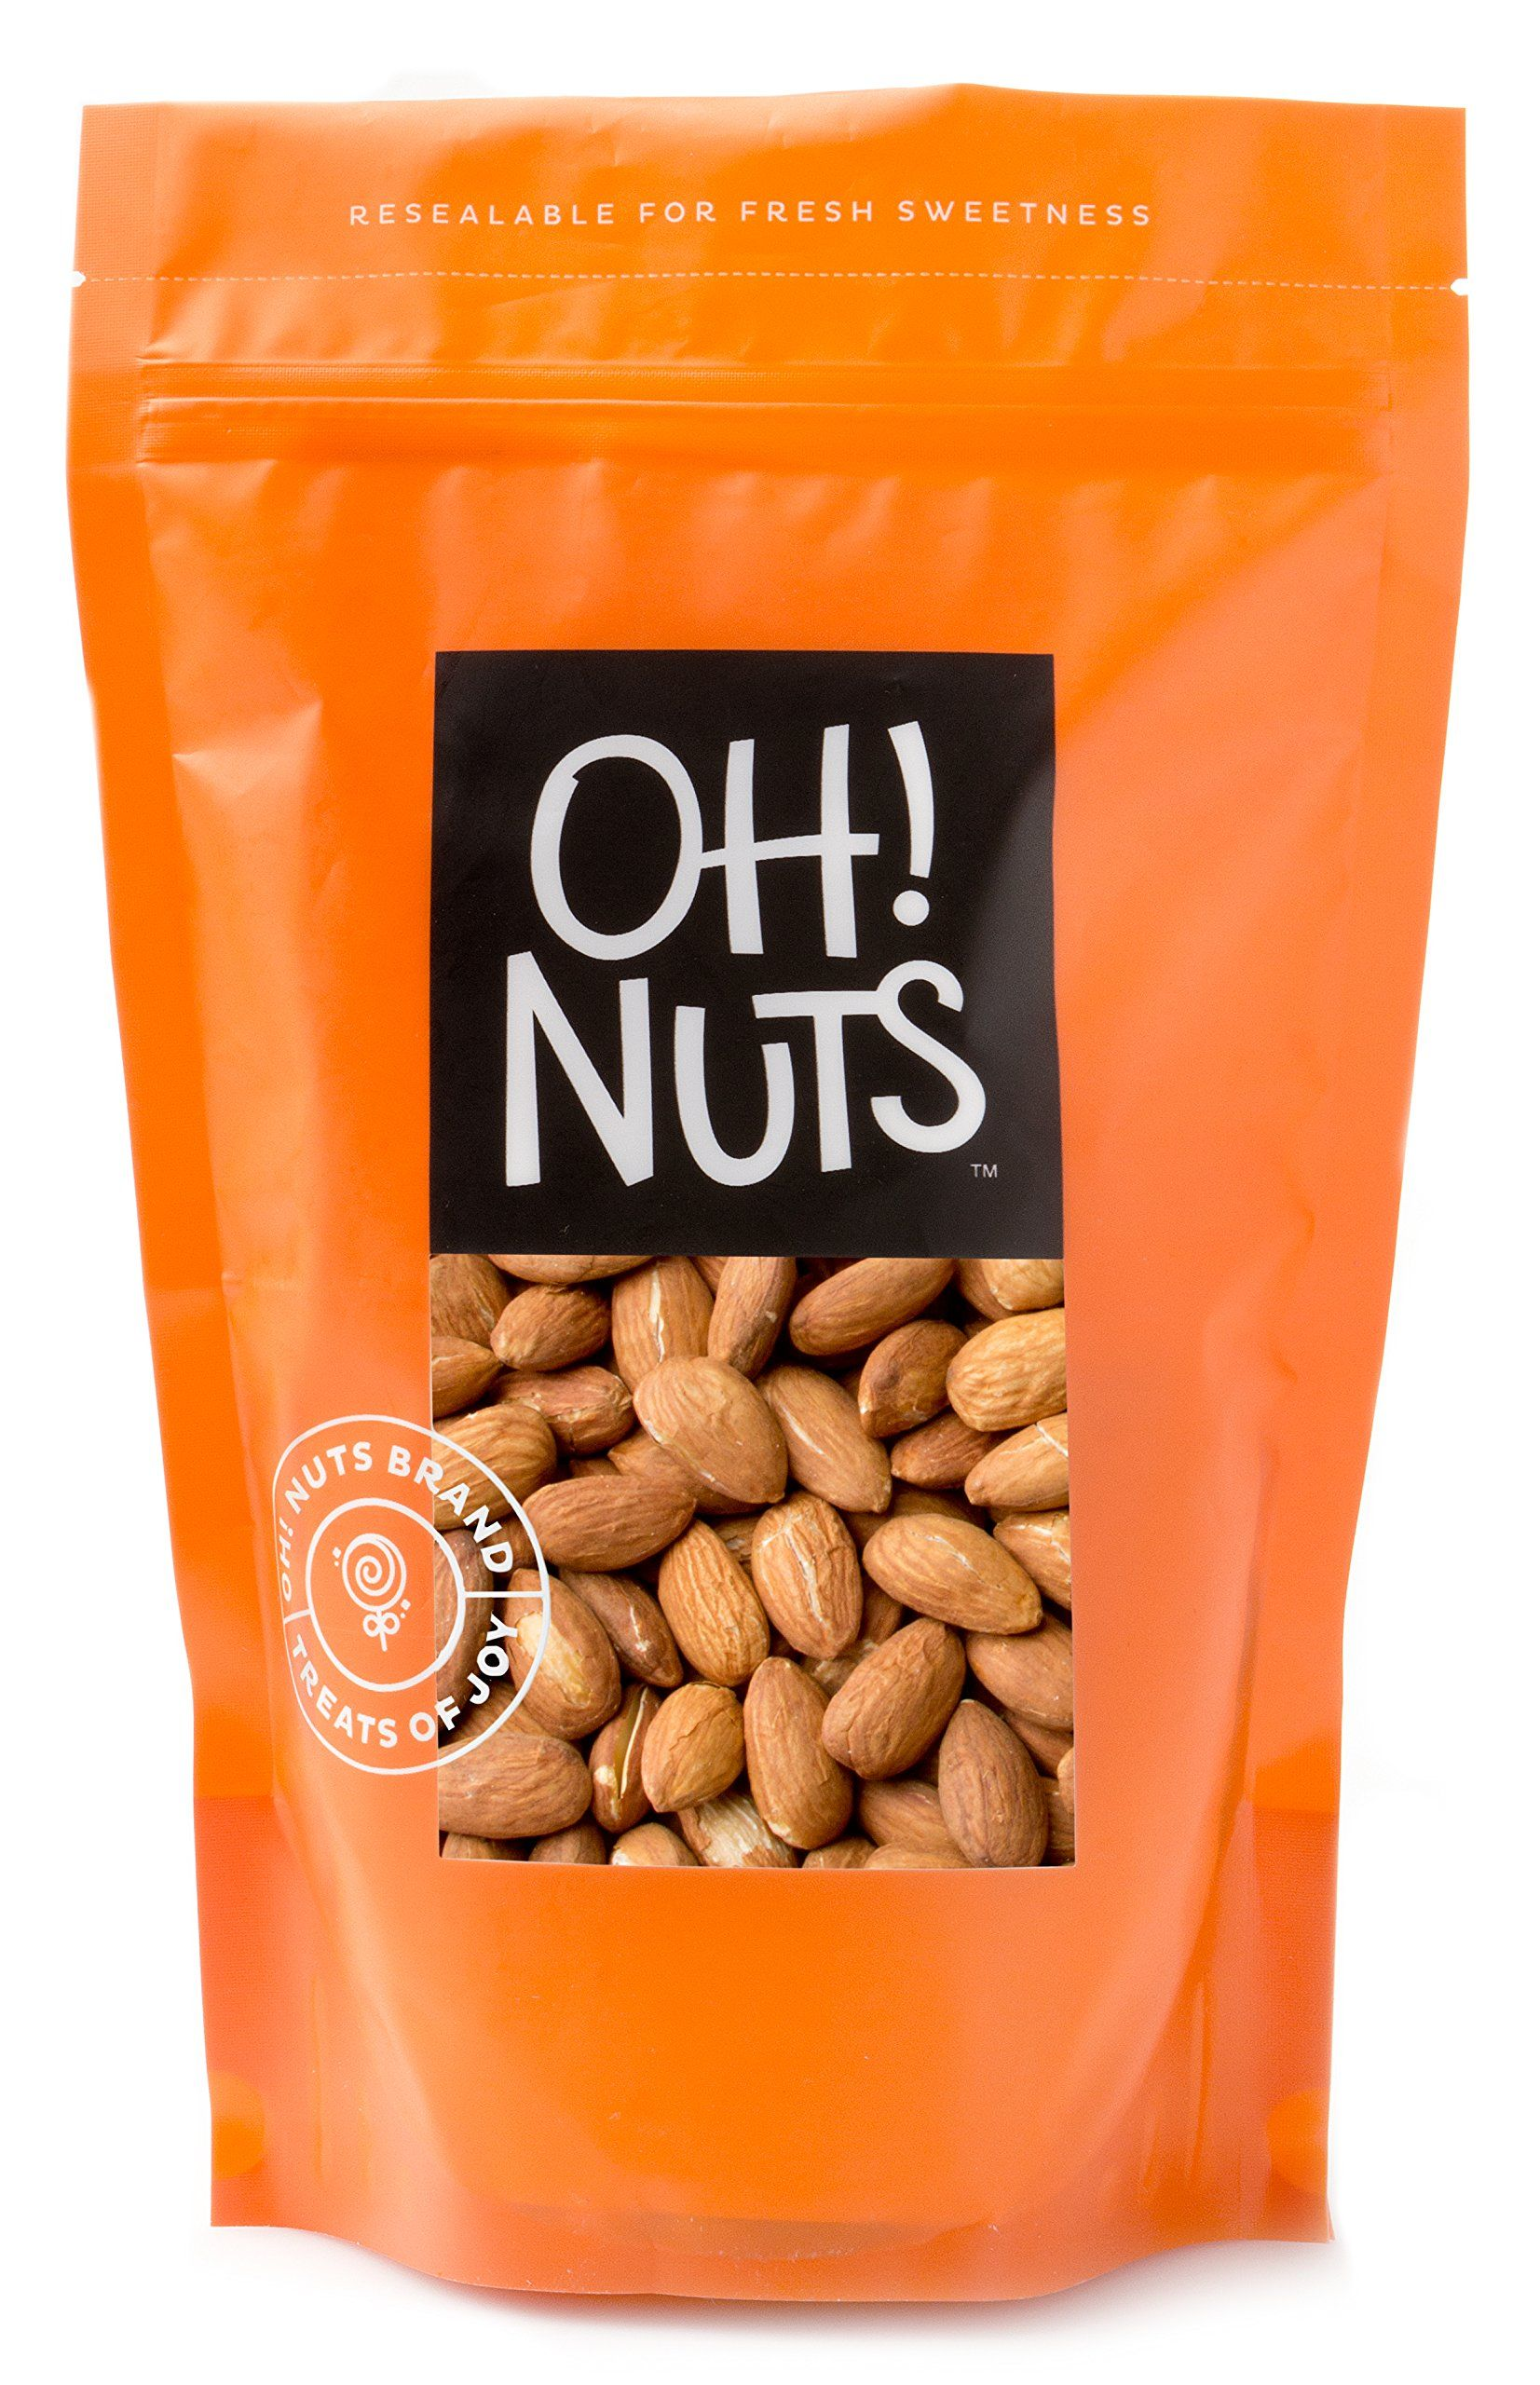 Dry Roasted Unsalted Almonds 2 Pound Bag Oh Nuts You Can Get More Details By Clicking On The Image It Is Ama Roasted Unsalted Almonds Keto Snacks Snacks